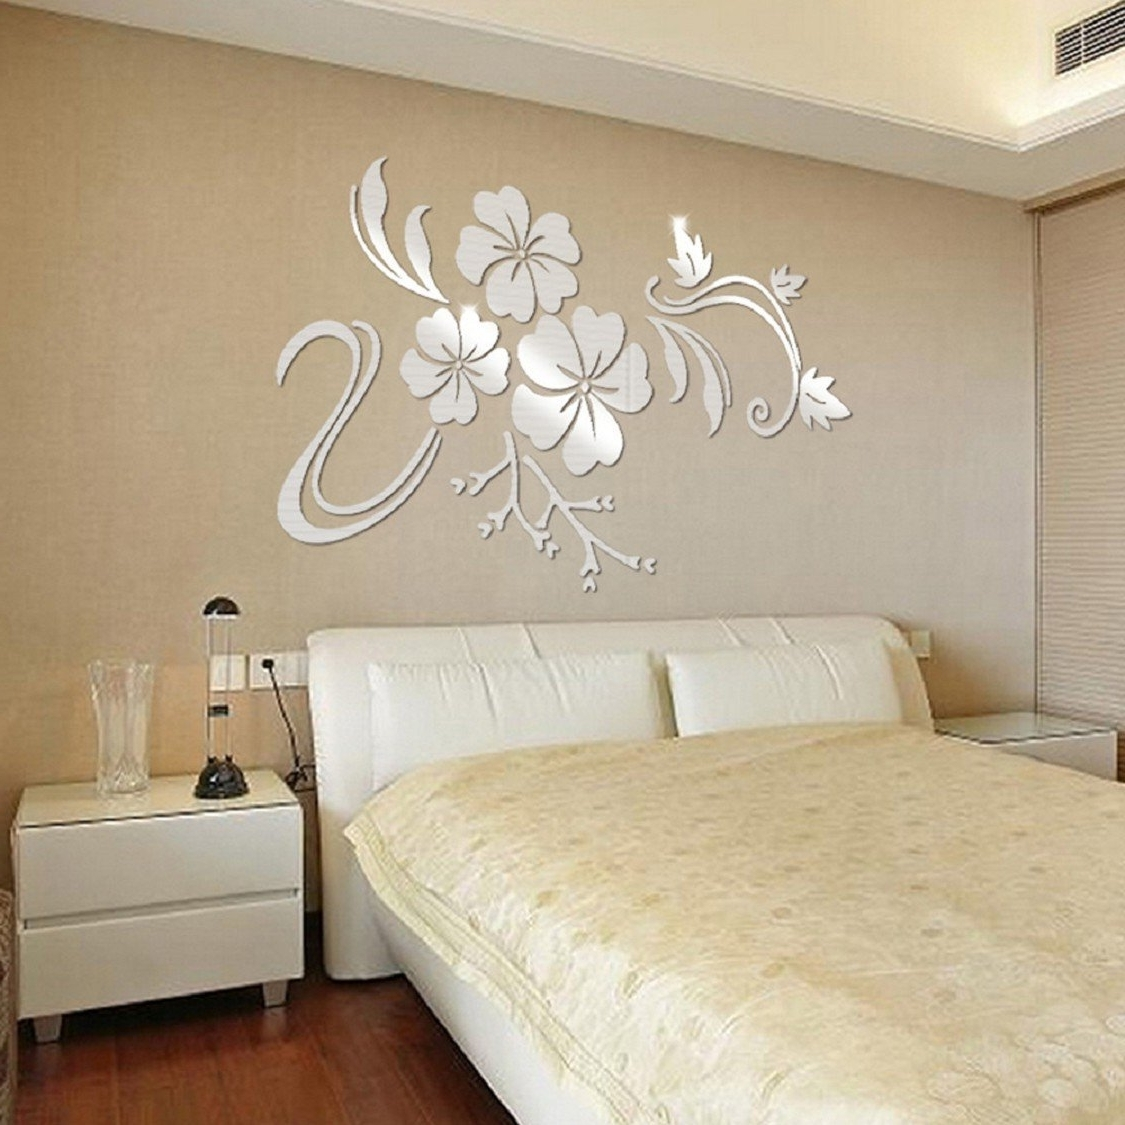 Gold Wall Art Stickers Inside Preferred Ikevan 1set Acrylic Art 3d Mirror Flower Wall Stickers Diy Home (View 4 of 15)